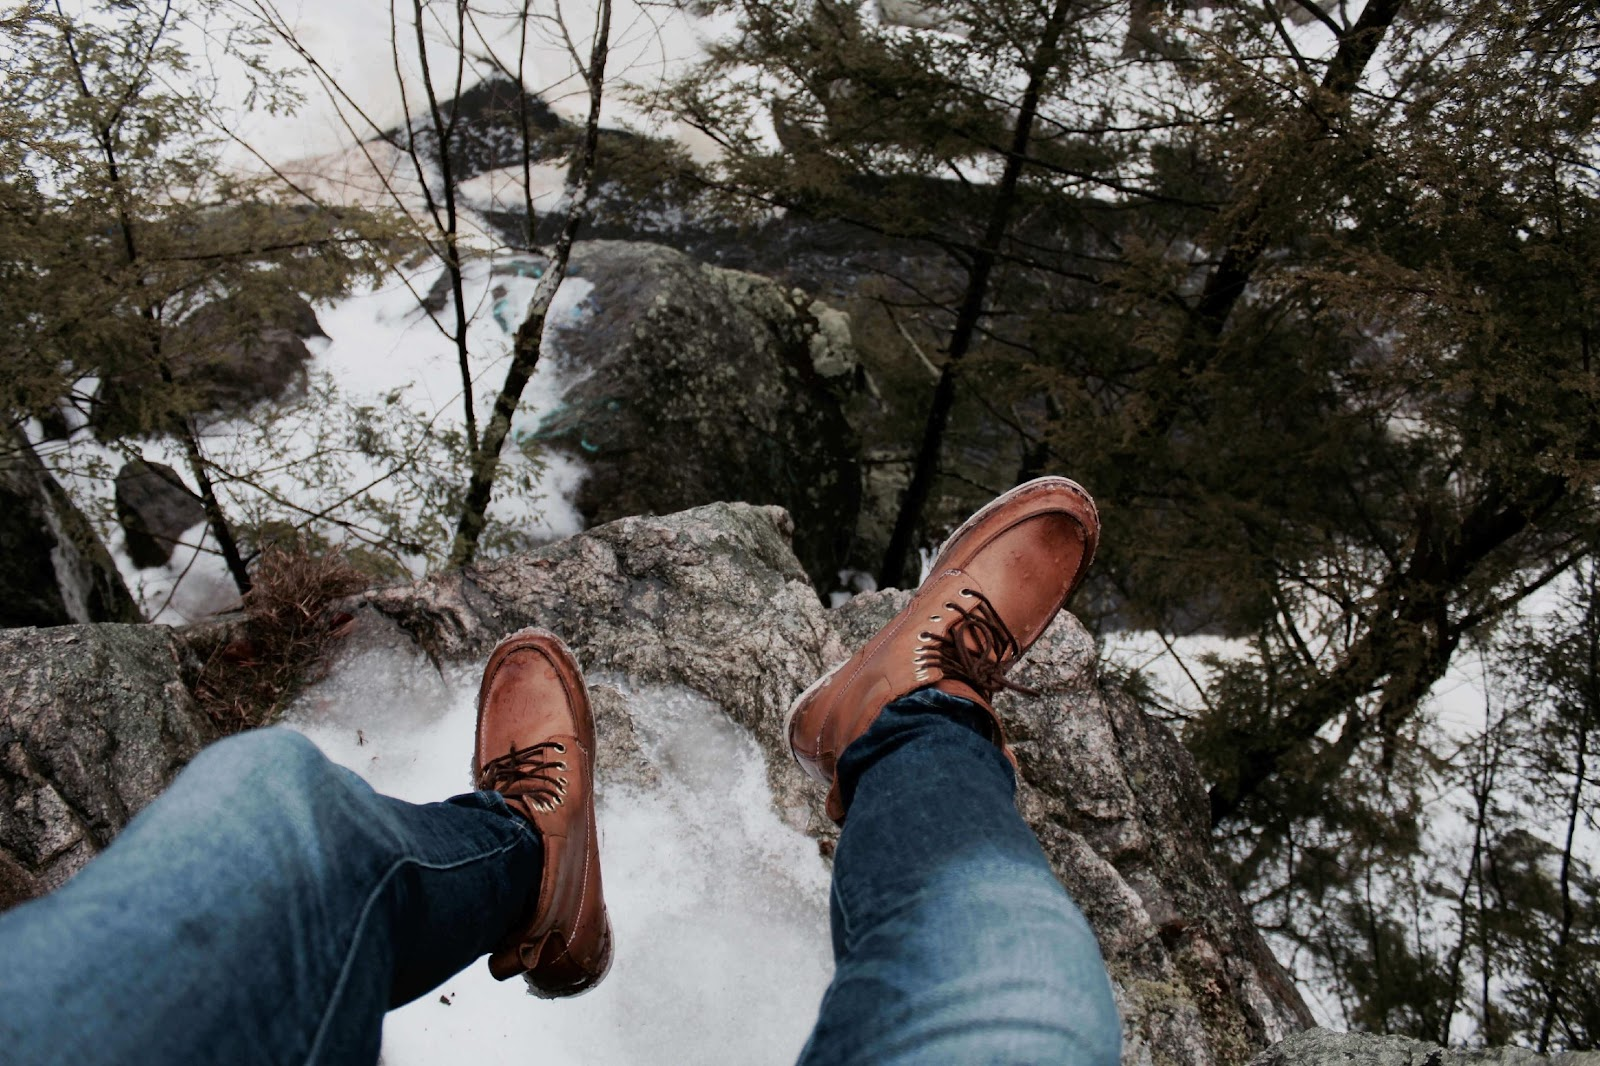 Shoes to Wear In Snow